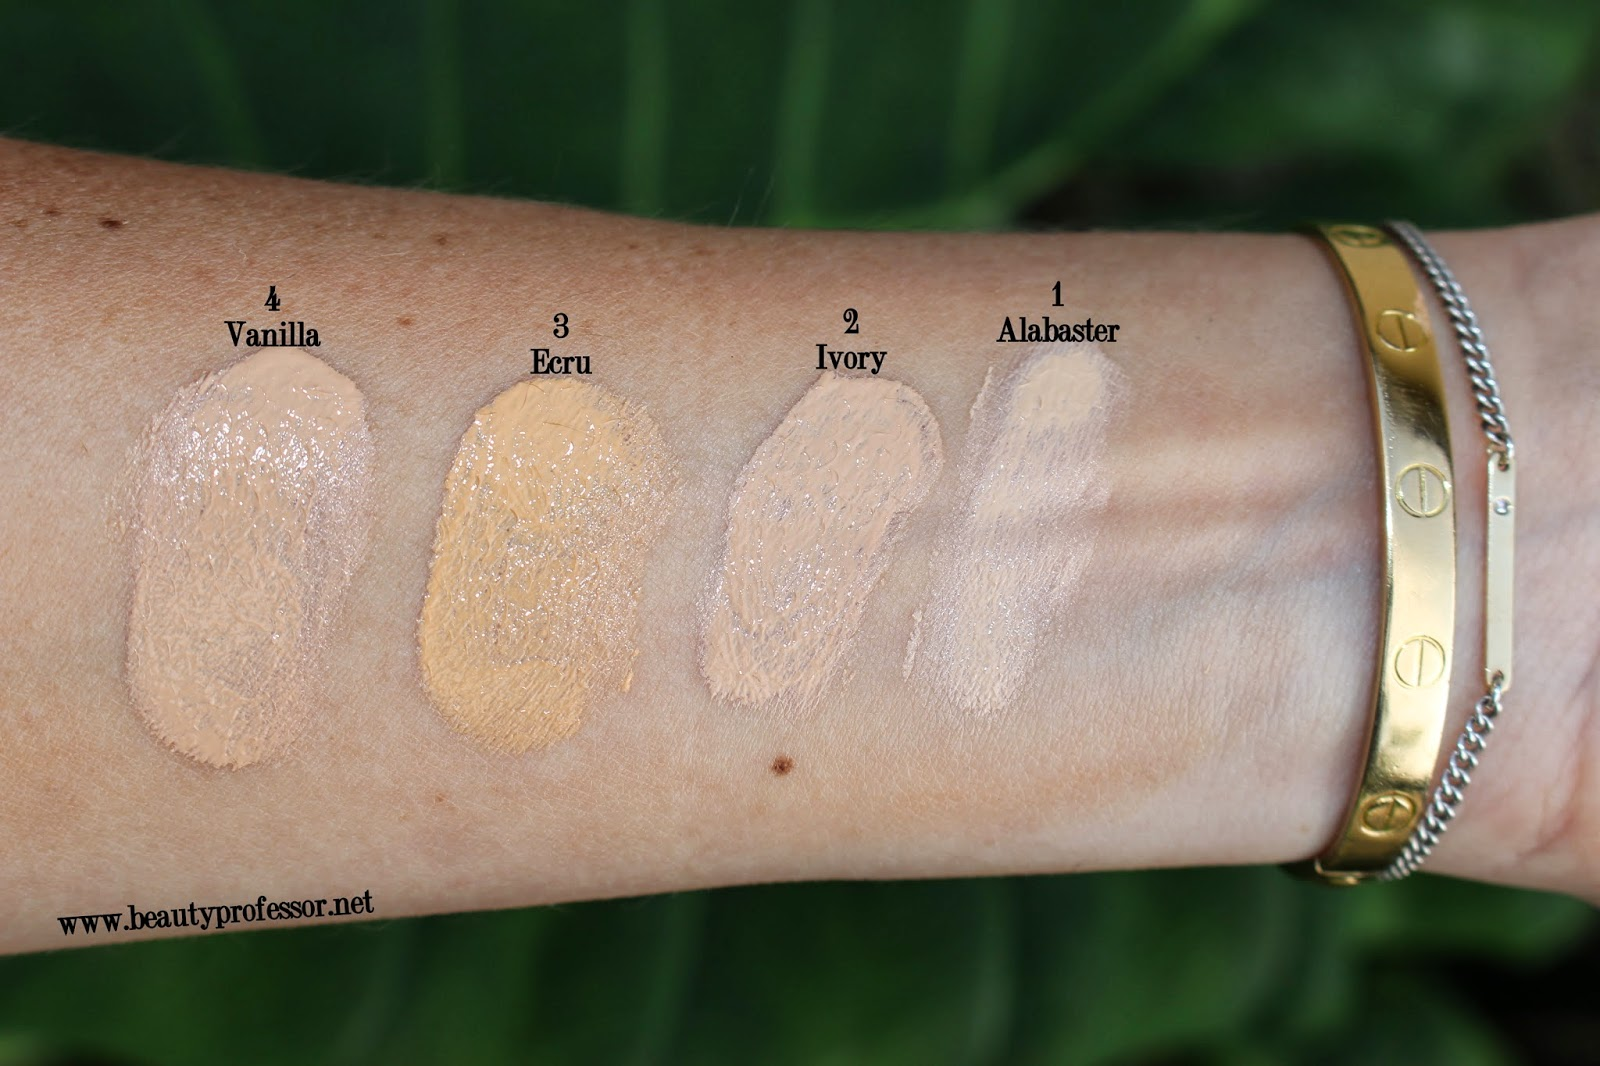 Illusion Tinted Moisturizer by Hourglass #4